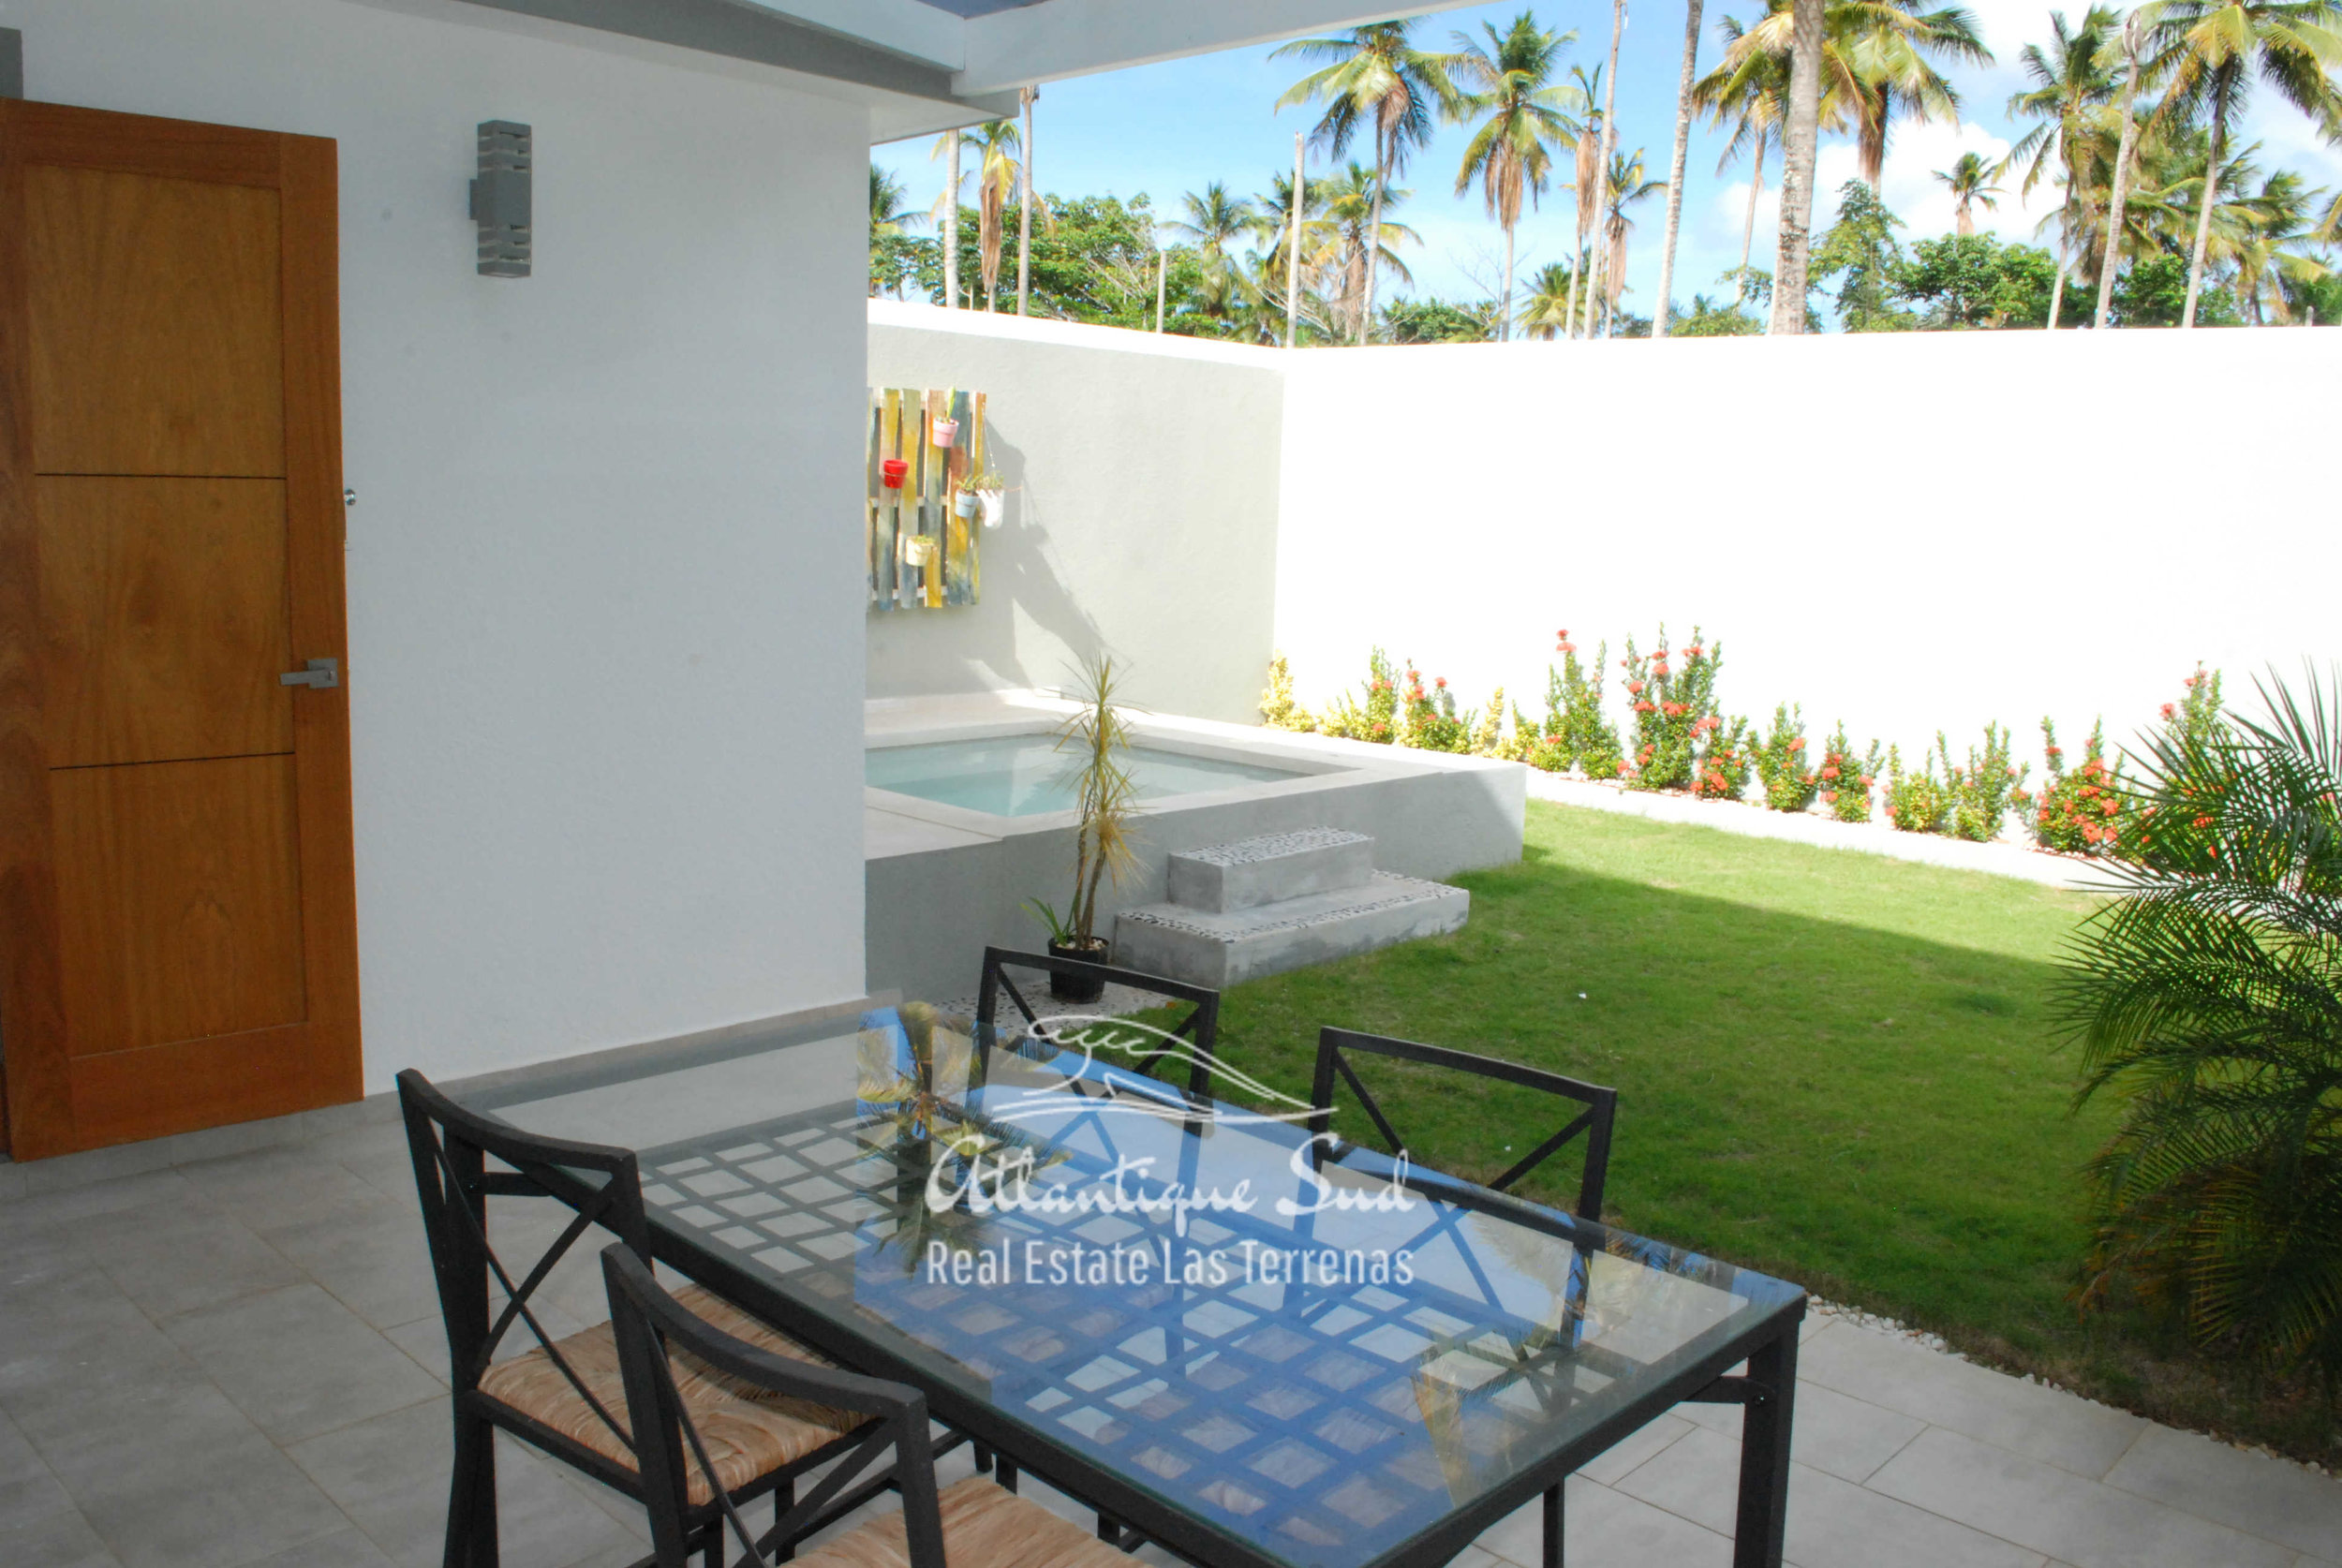 New project of commodious townhouses Real Estate Las Terrenas Atlantique Sud7.jpg